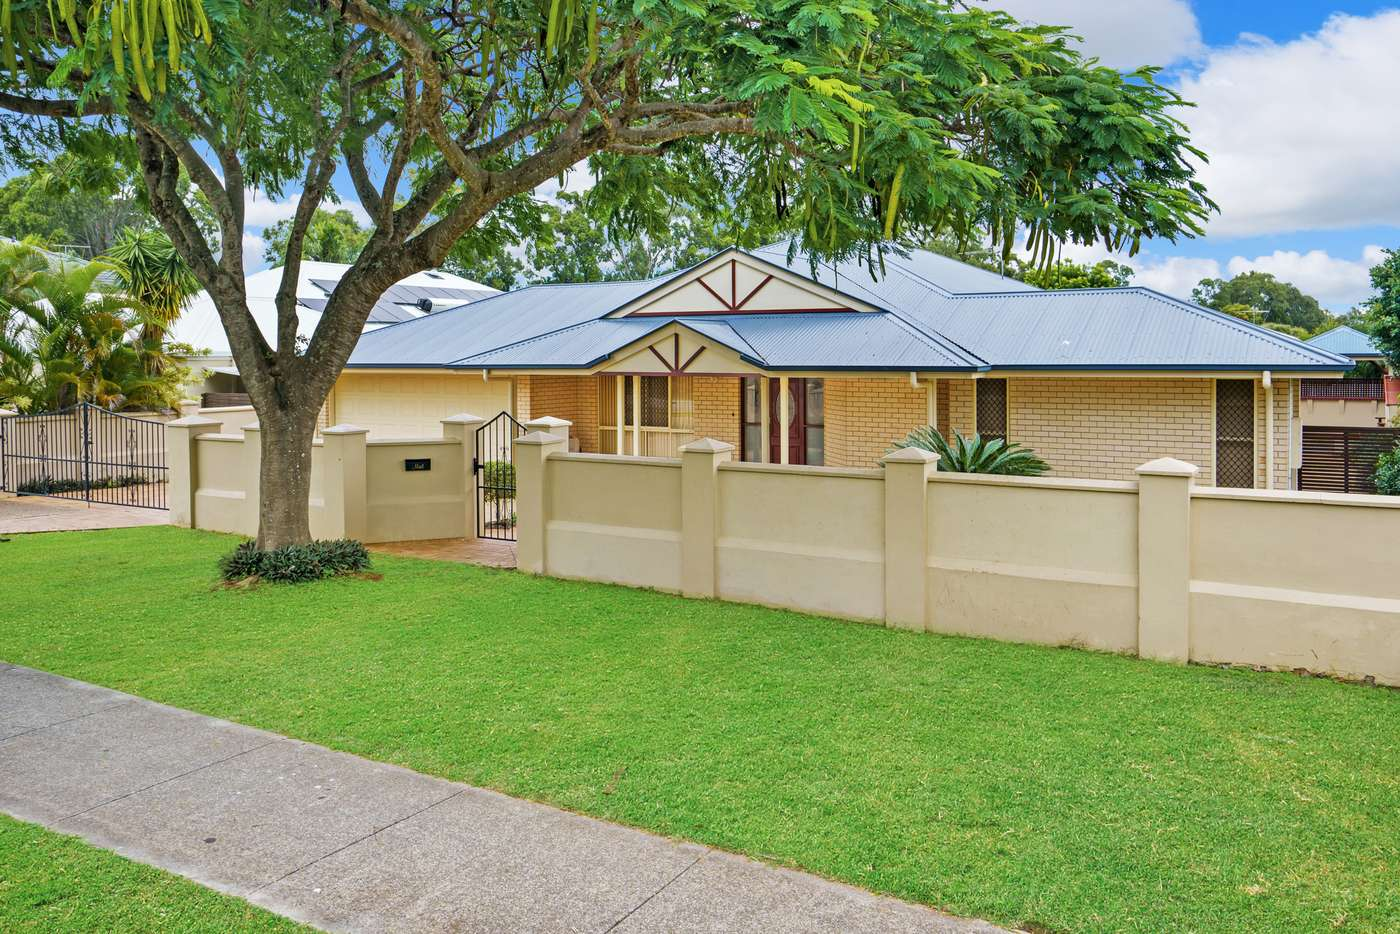 Main view of Homely house listing, 426 Main Road, Wellington Point QLD 4160